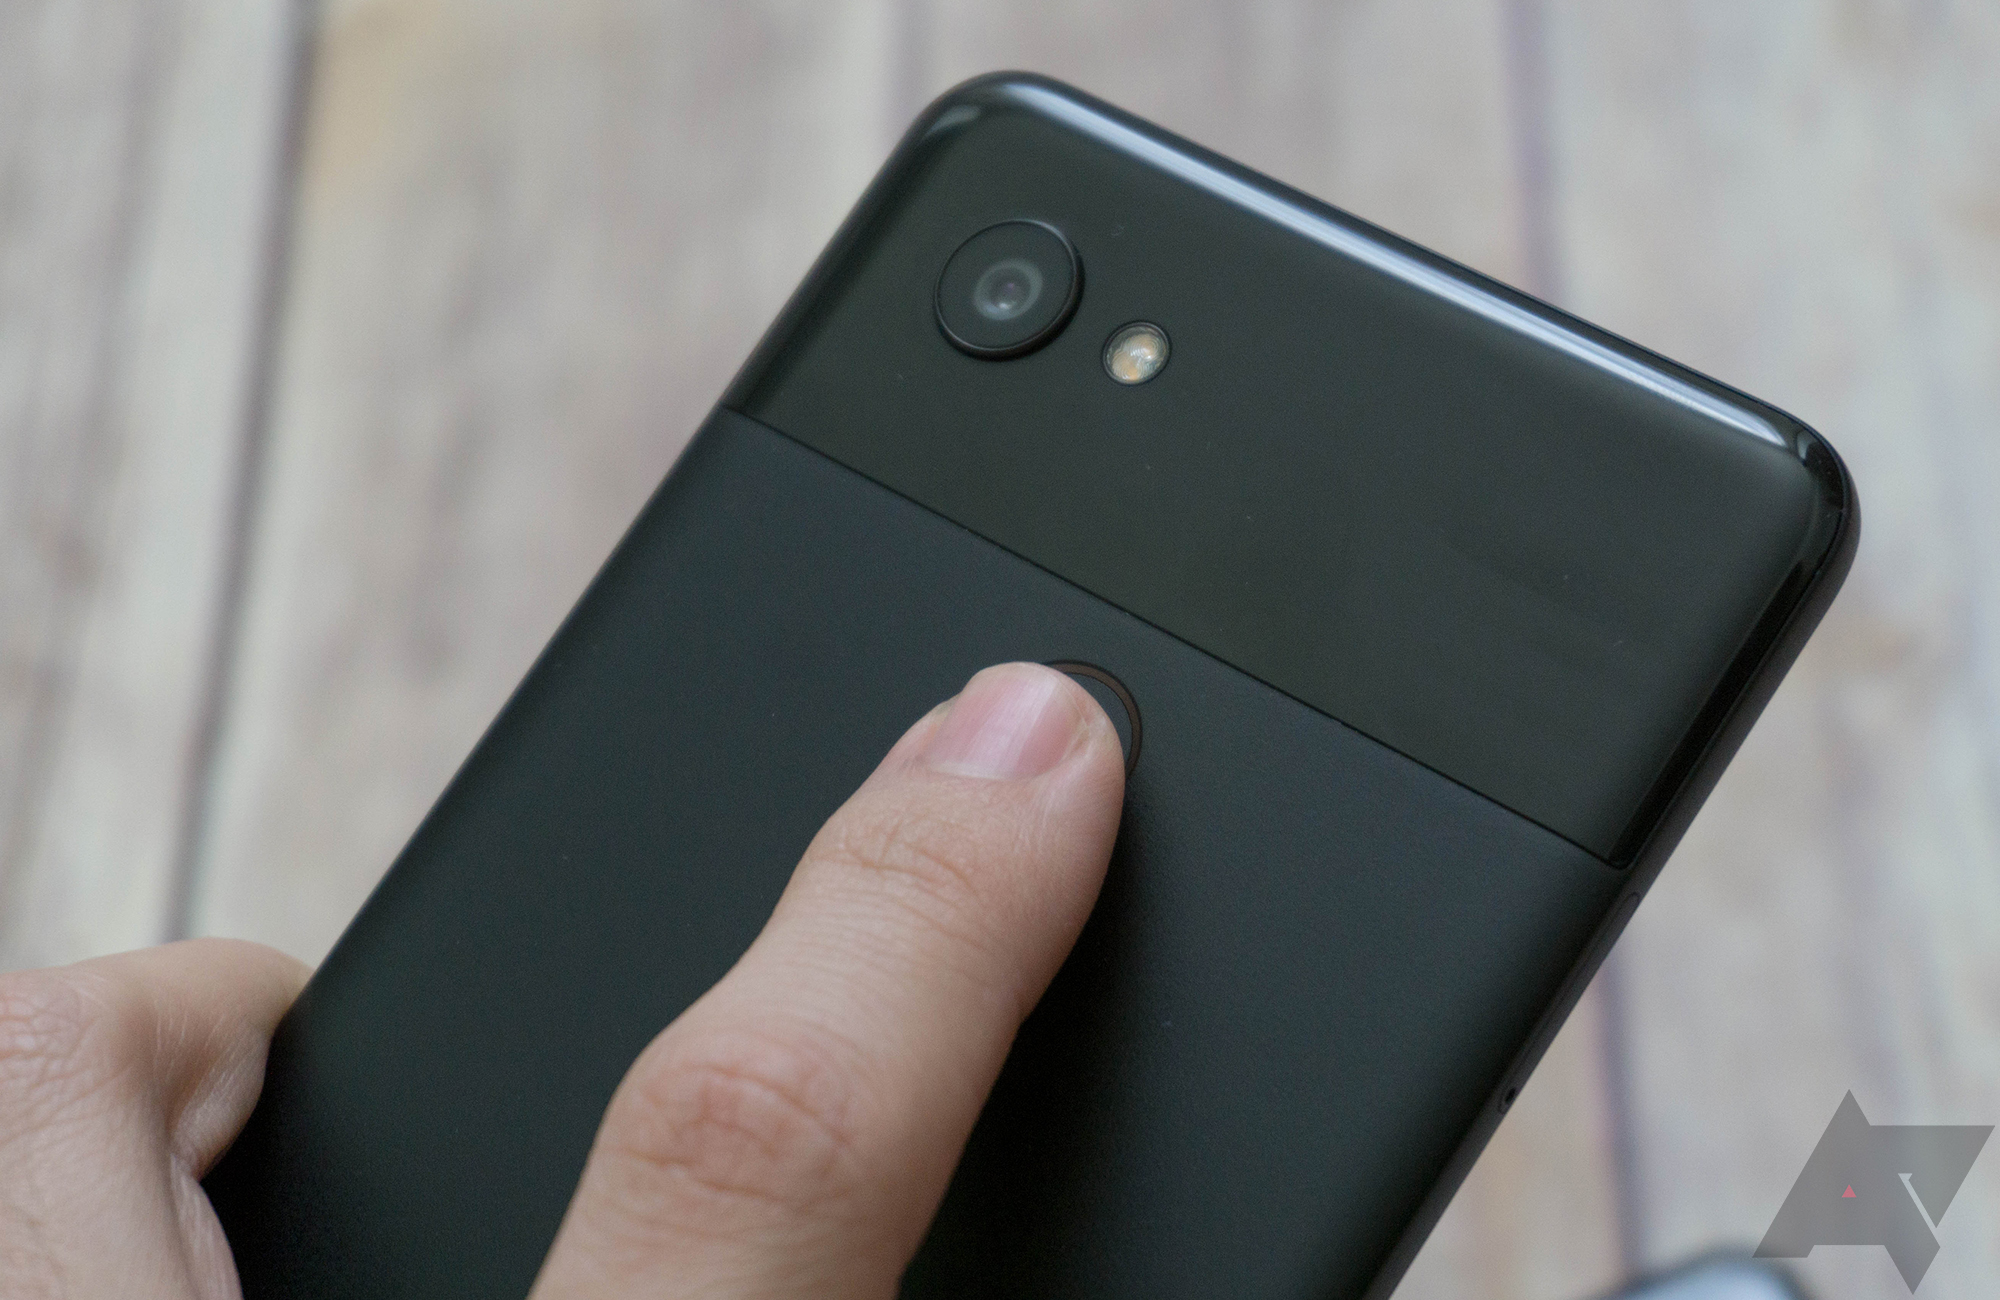 Touching the fingerprint sensor no longer keeps your display awake on Android 10